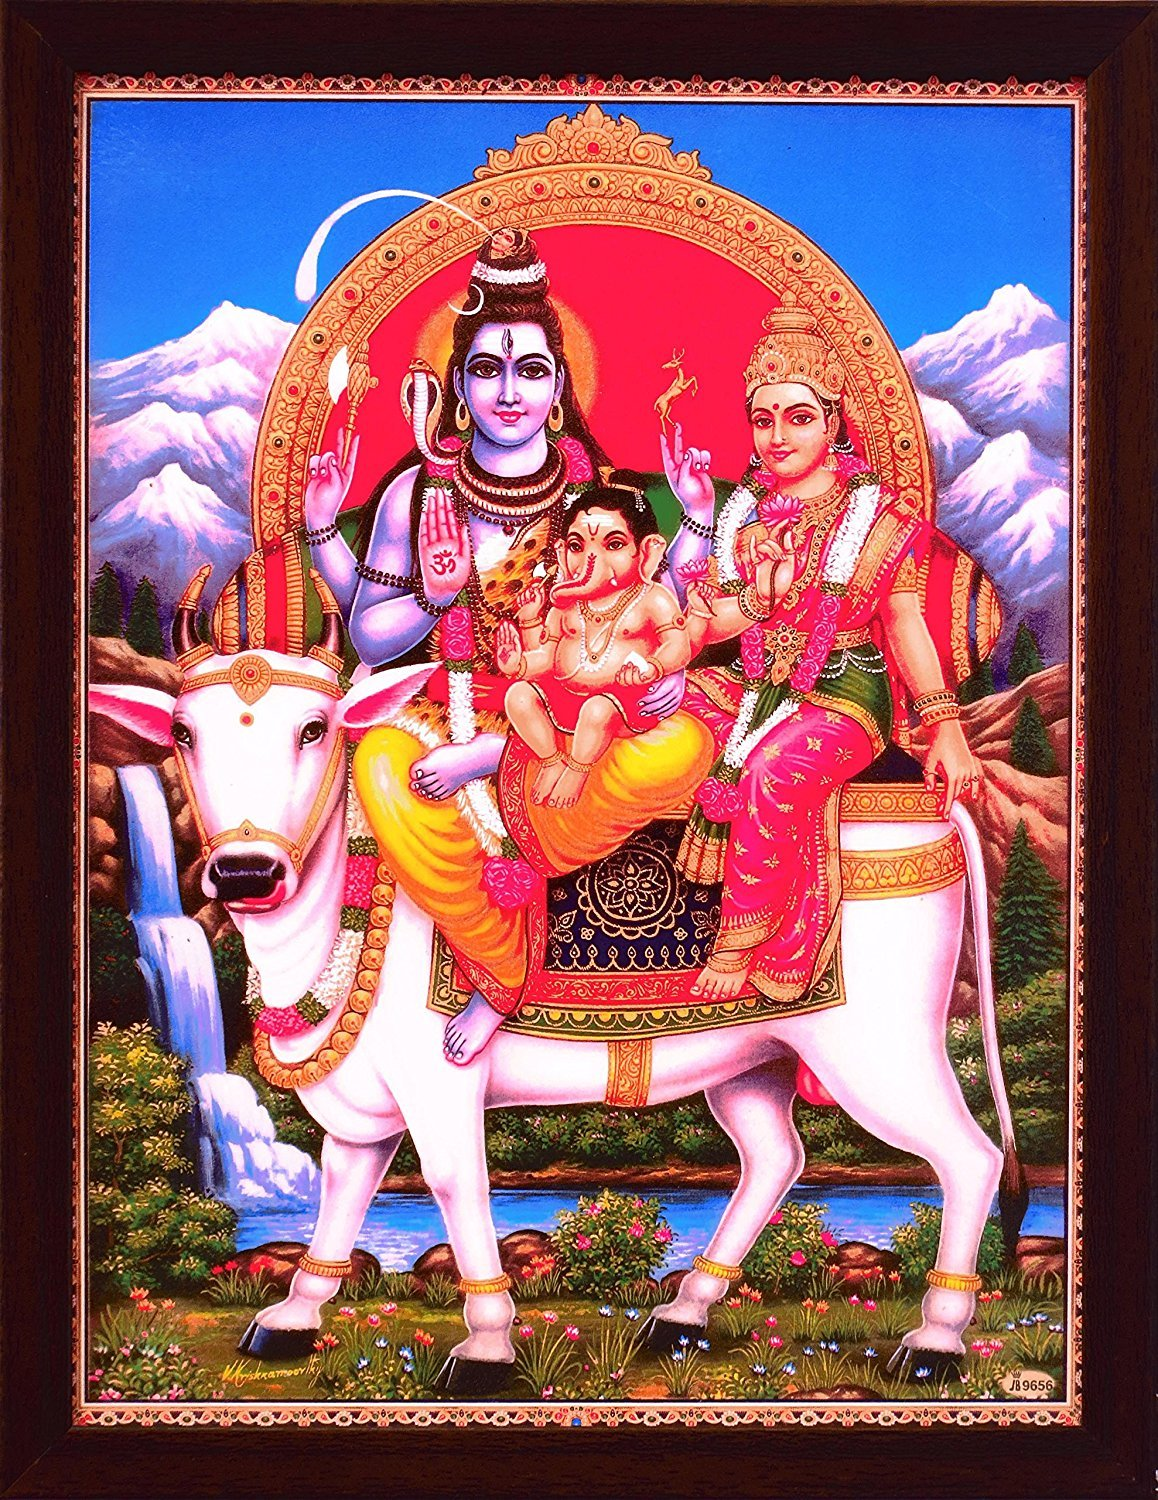 Shiva Parvati and Ganesh sitting on Nandi cow, also ohm symbol is showing, Poster painting with frame for Hindu Religious Worship purpose.